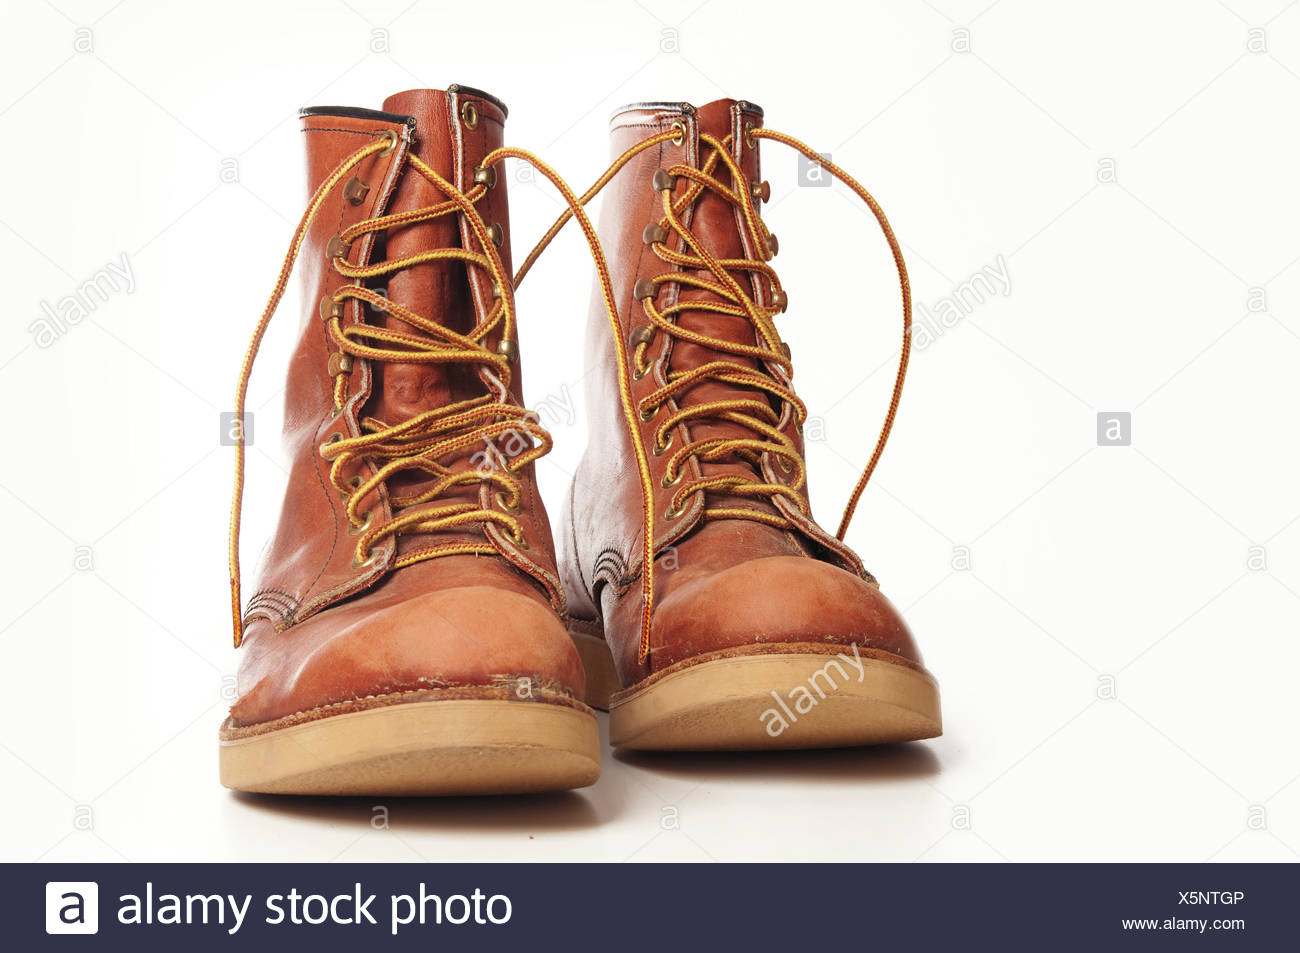 Men's rugged leather boots isolated against white background - Stock Image